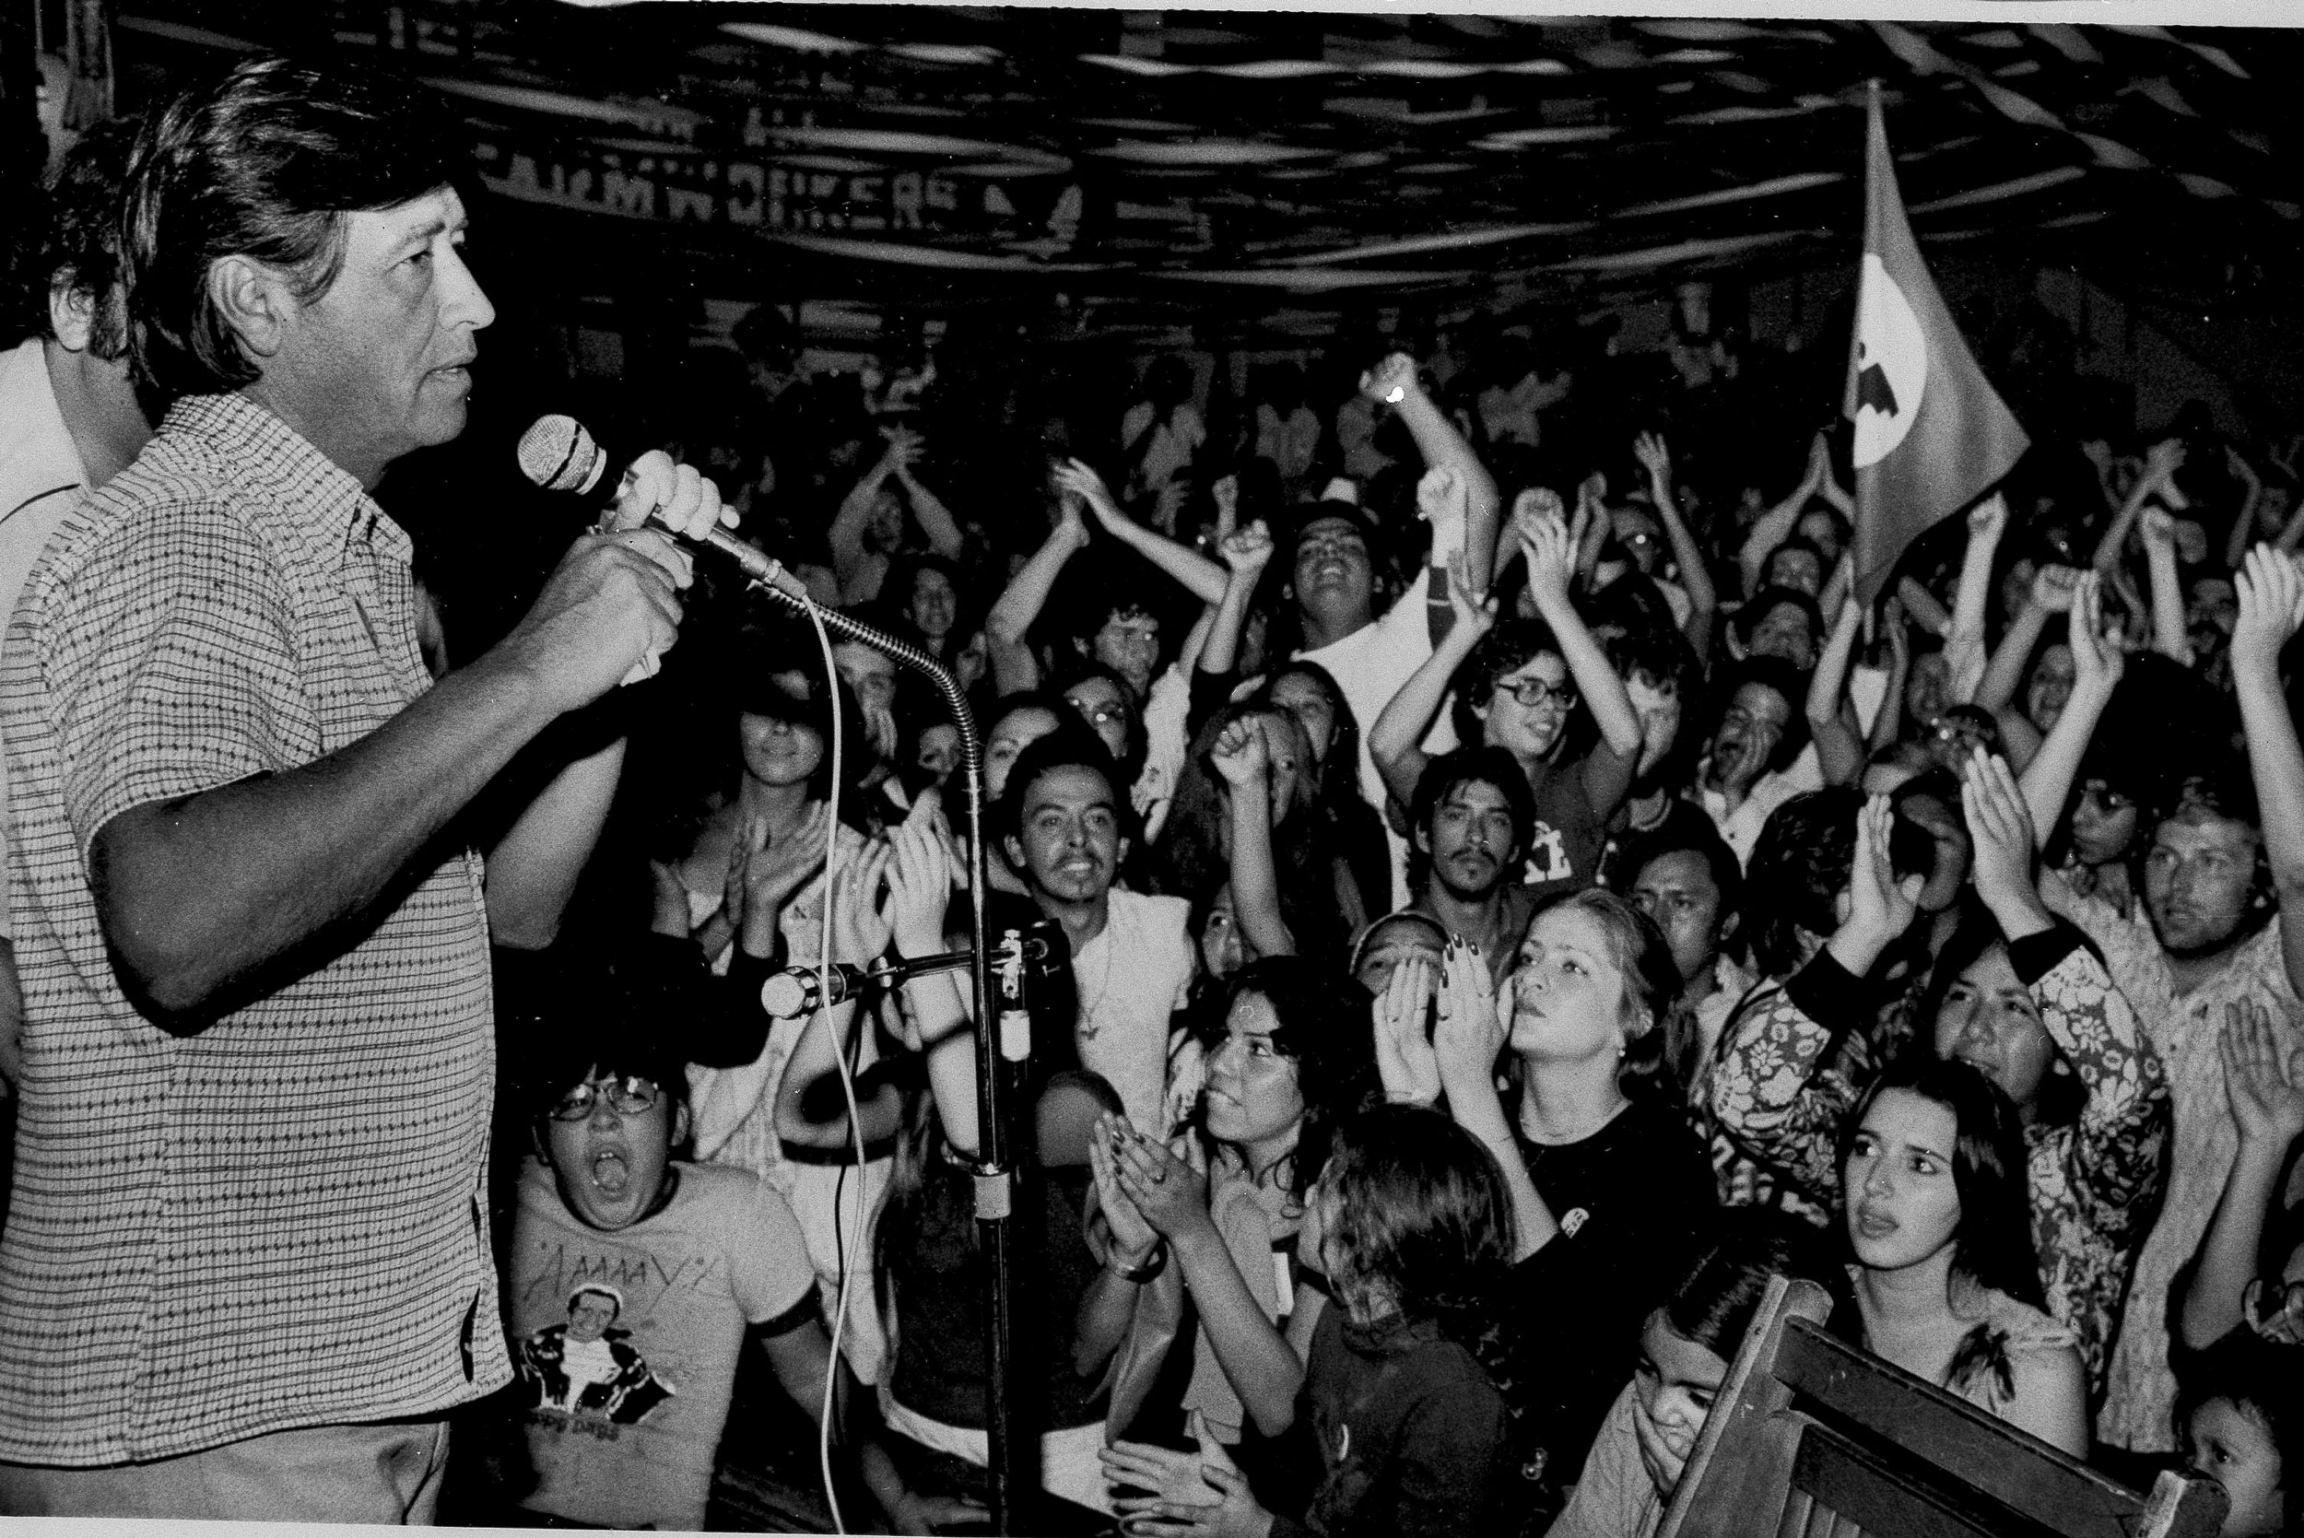 United Farm Workers leader Cesar Chavez speaks to a crowd in Los Angeles, Nov. 3, 1976.